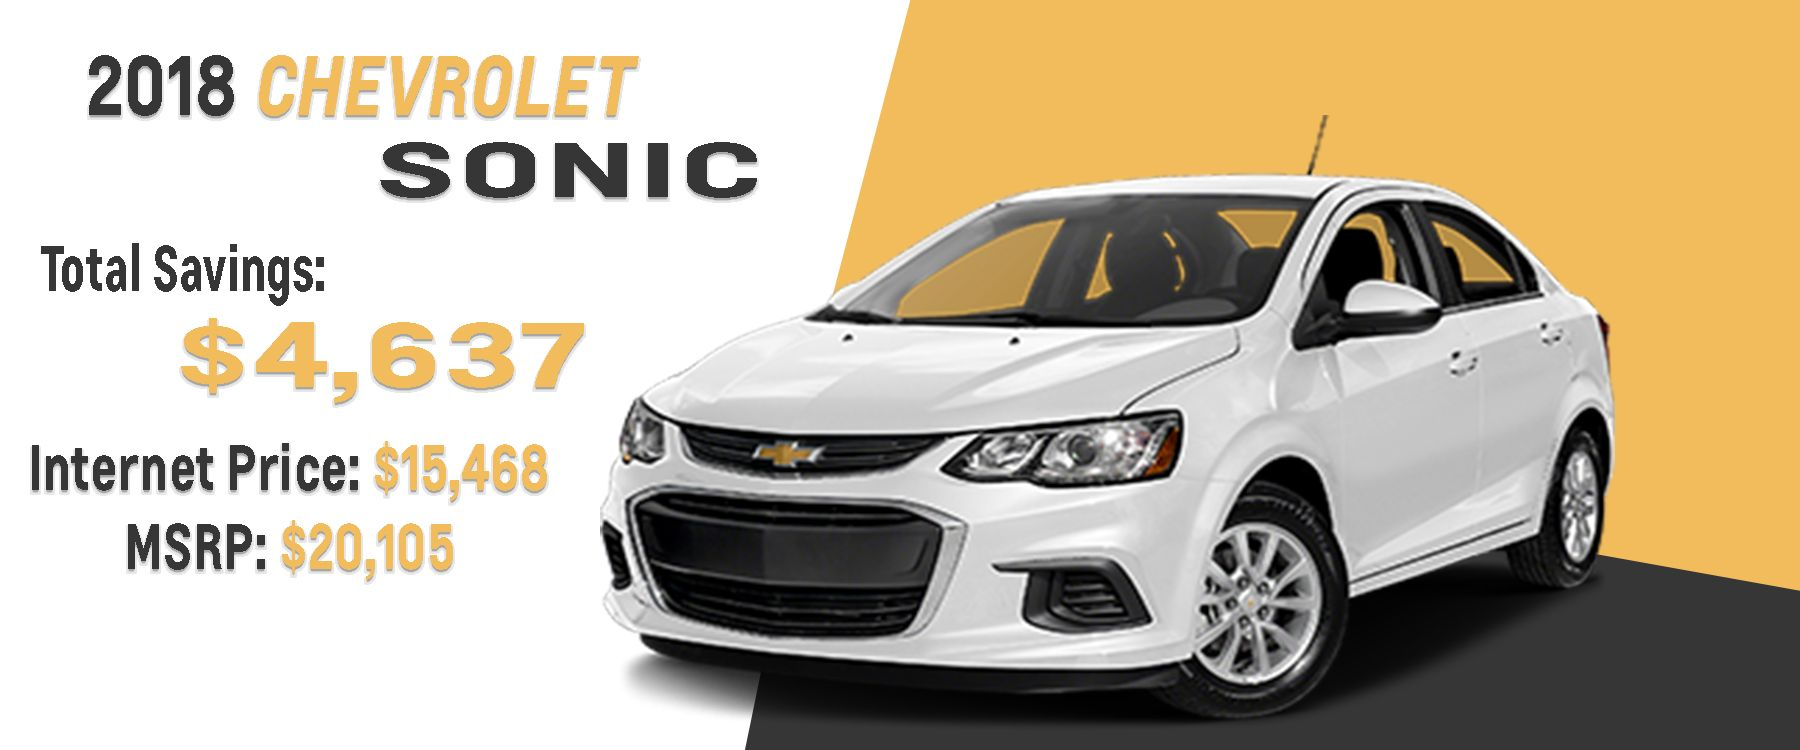 New Chevrolet Sonic In Homewood Chevrolet House In The Woods